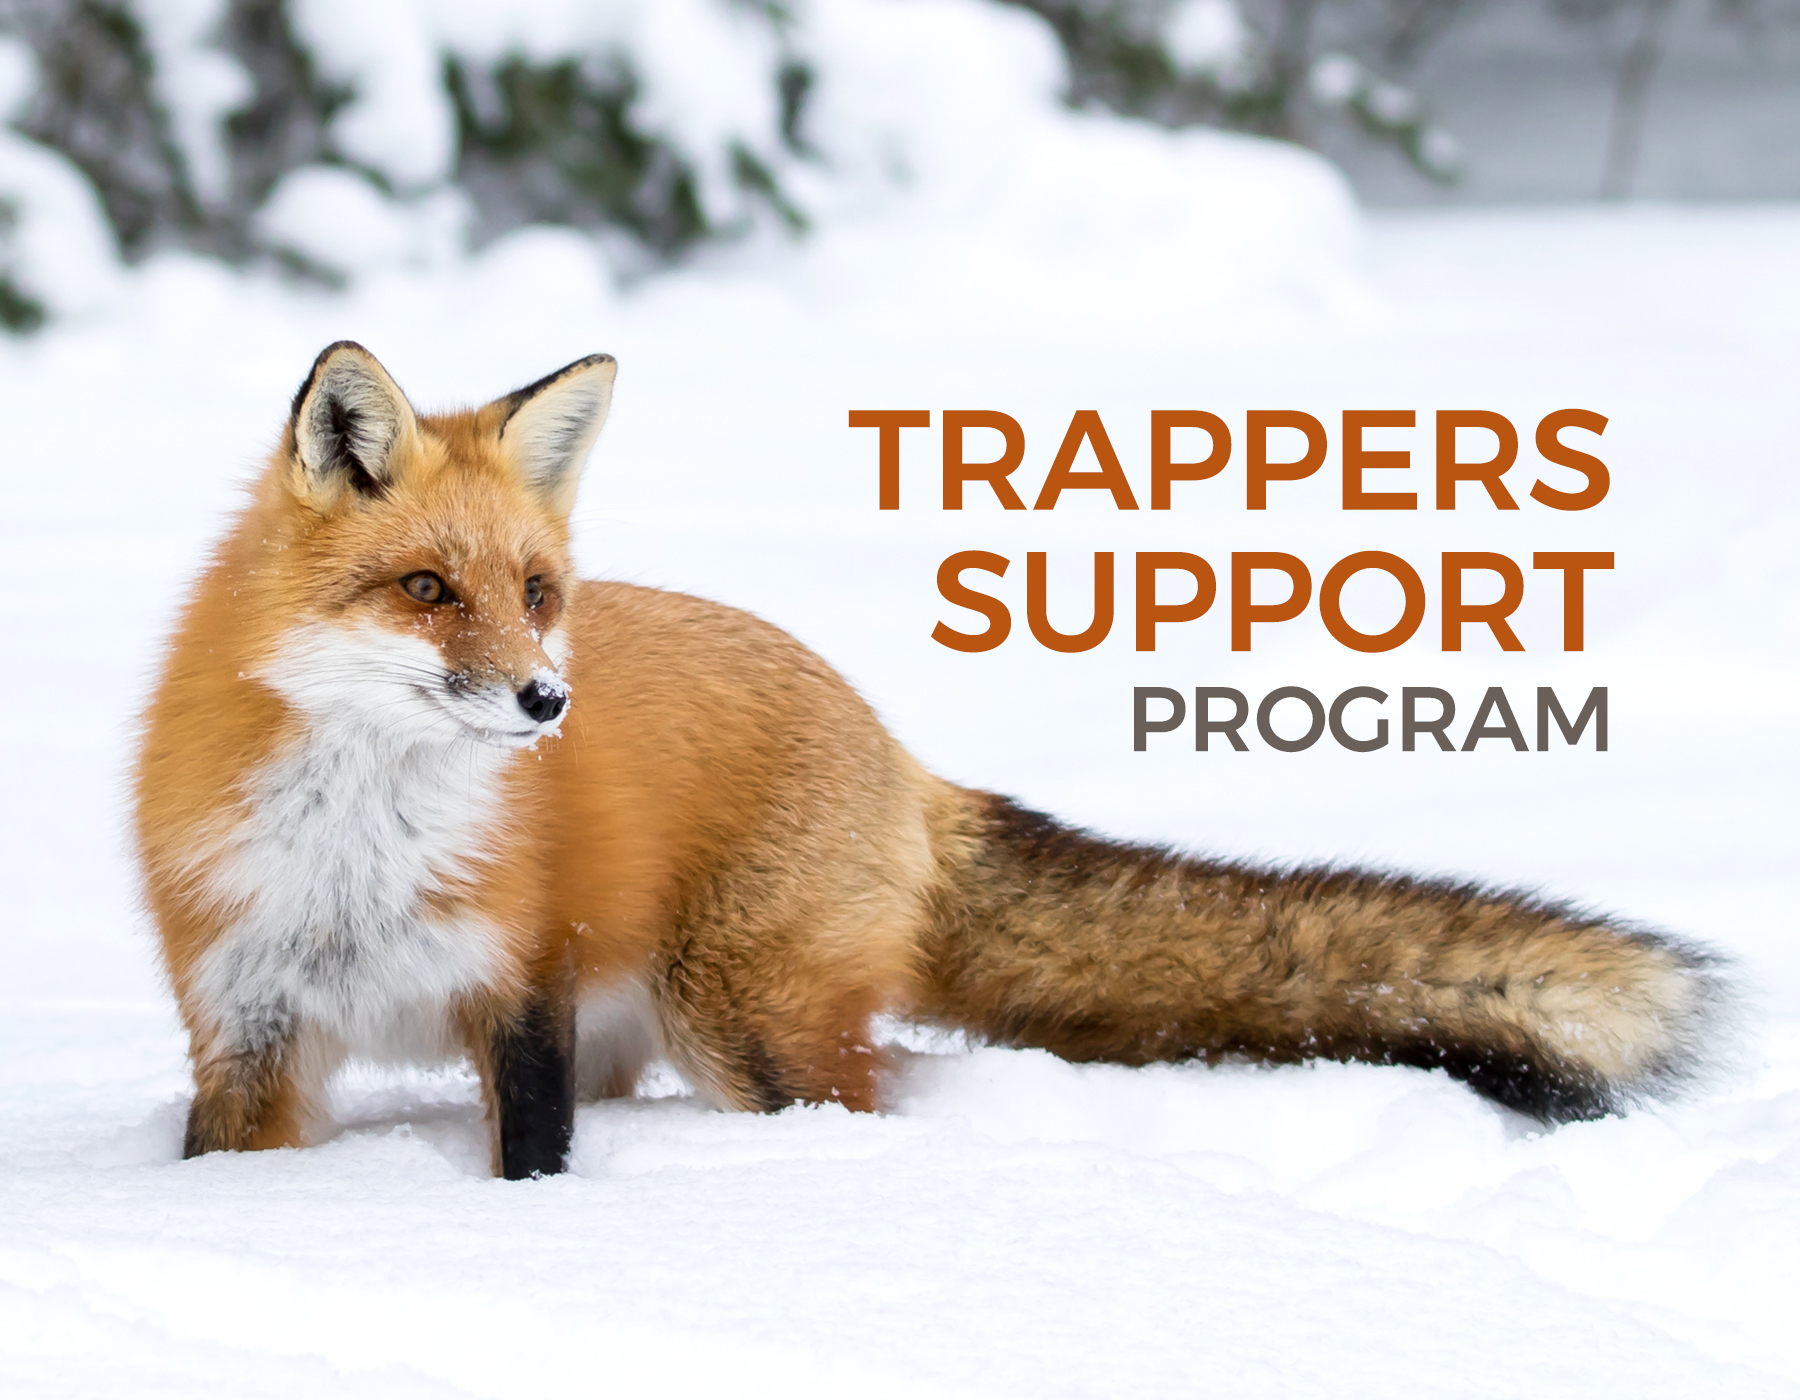 Trappers Support Program